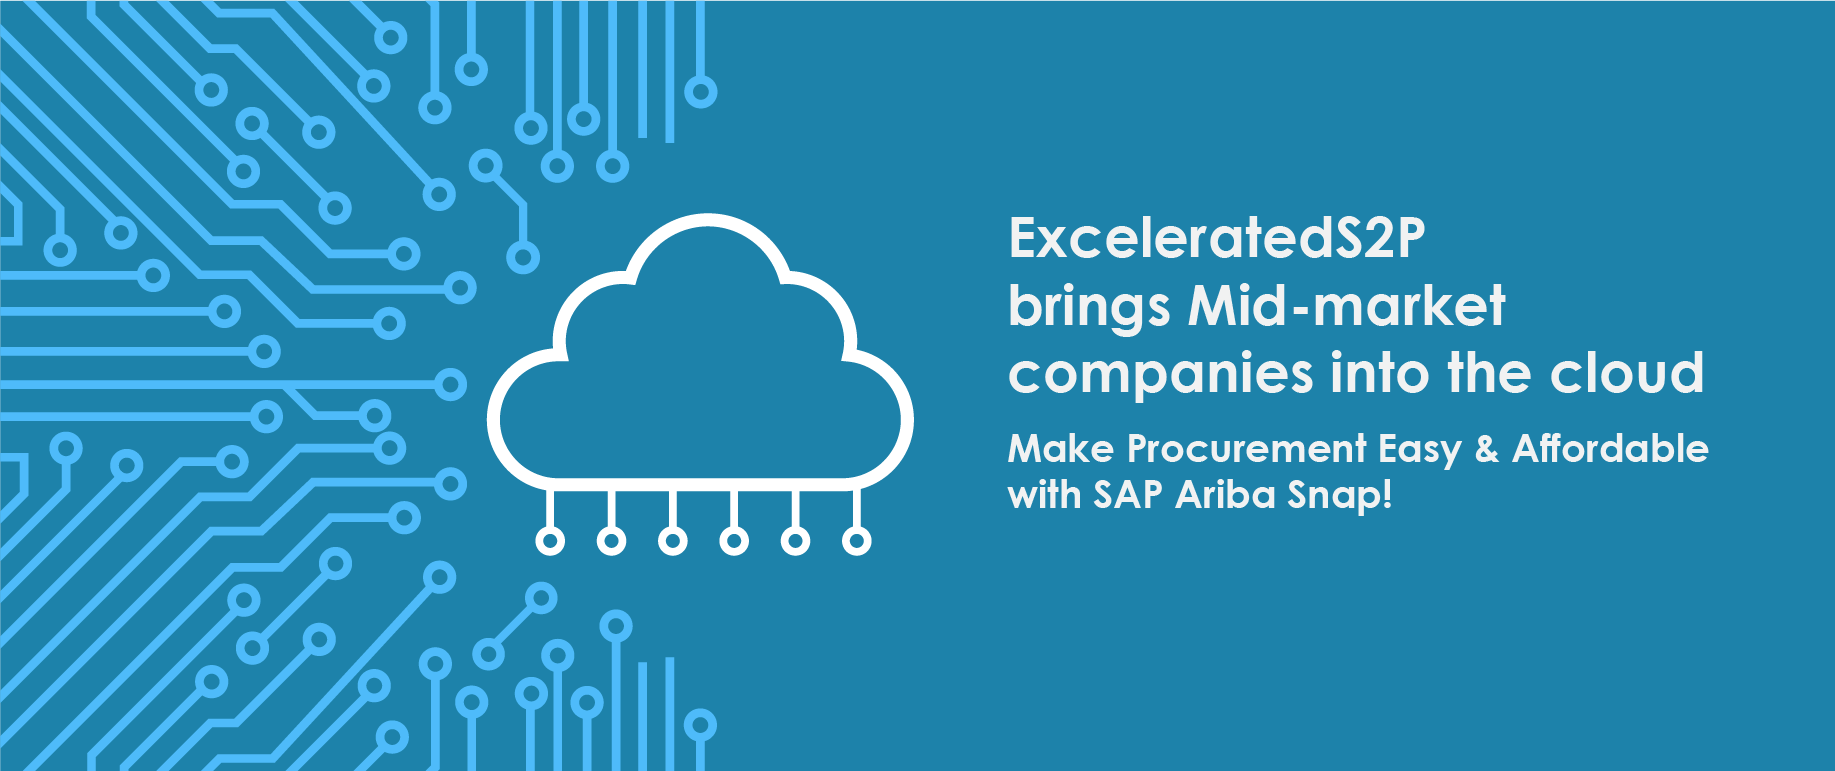 SAP Ariba snap for mid-market companies to move into the cloud, in a an affordable and fast way